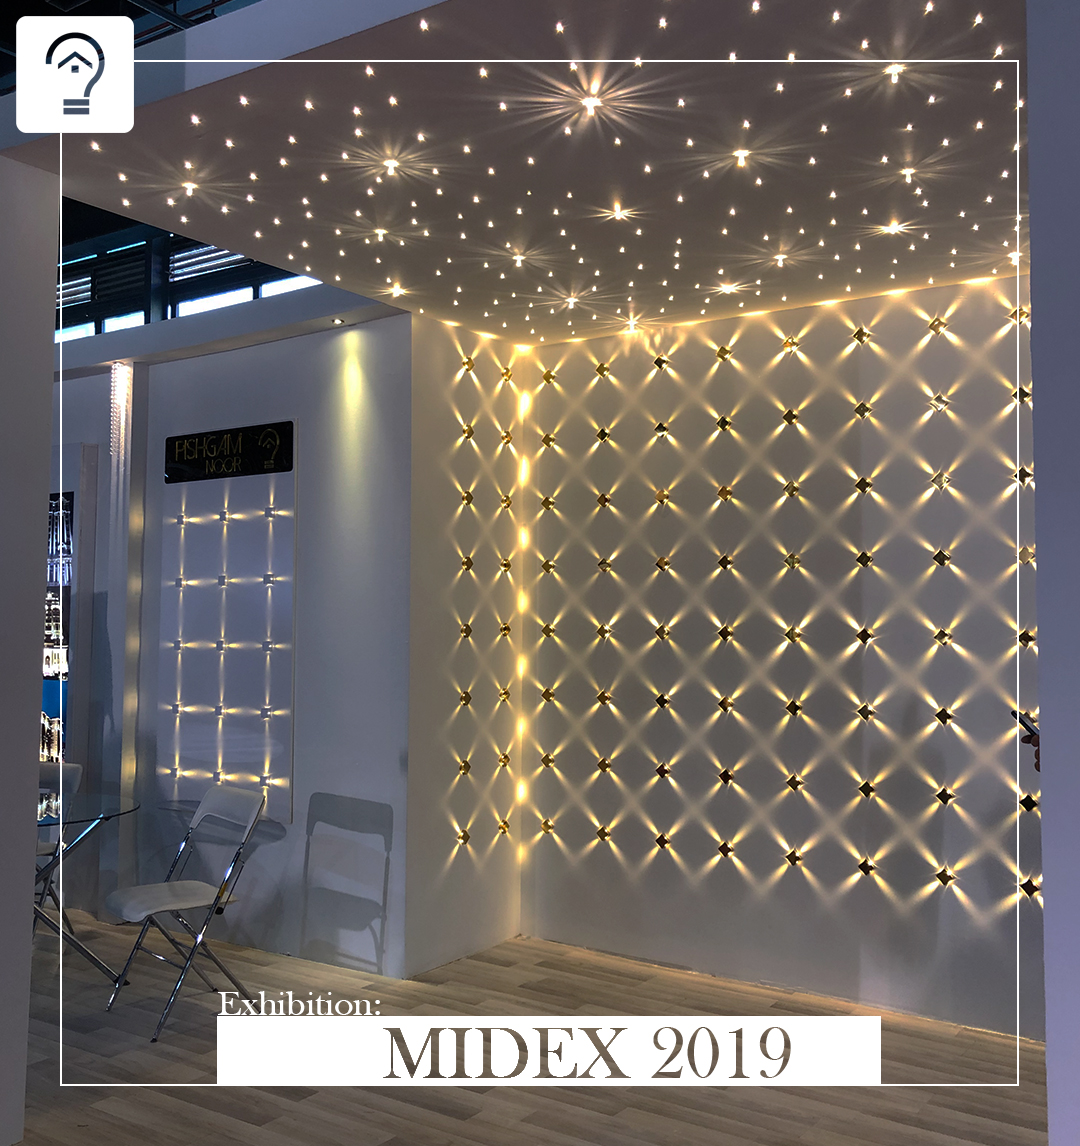 نمایشگاه MIDEX EXHIBITION 2019